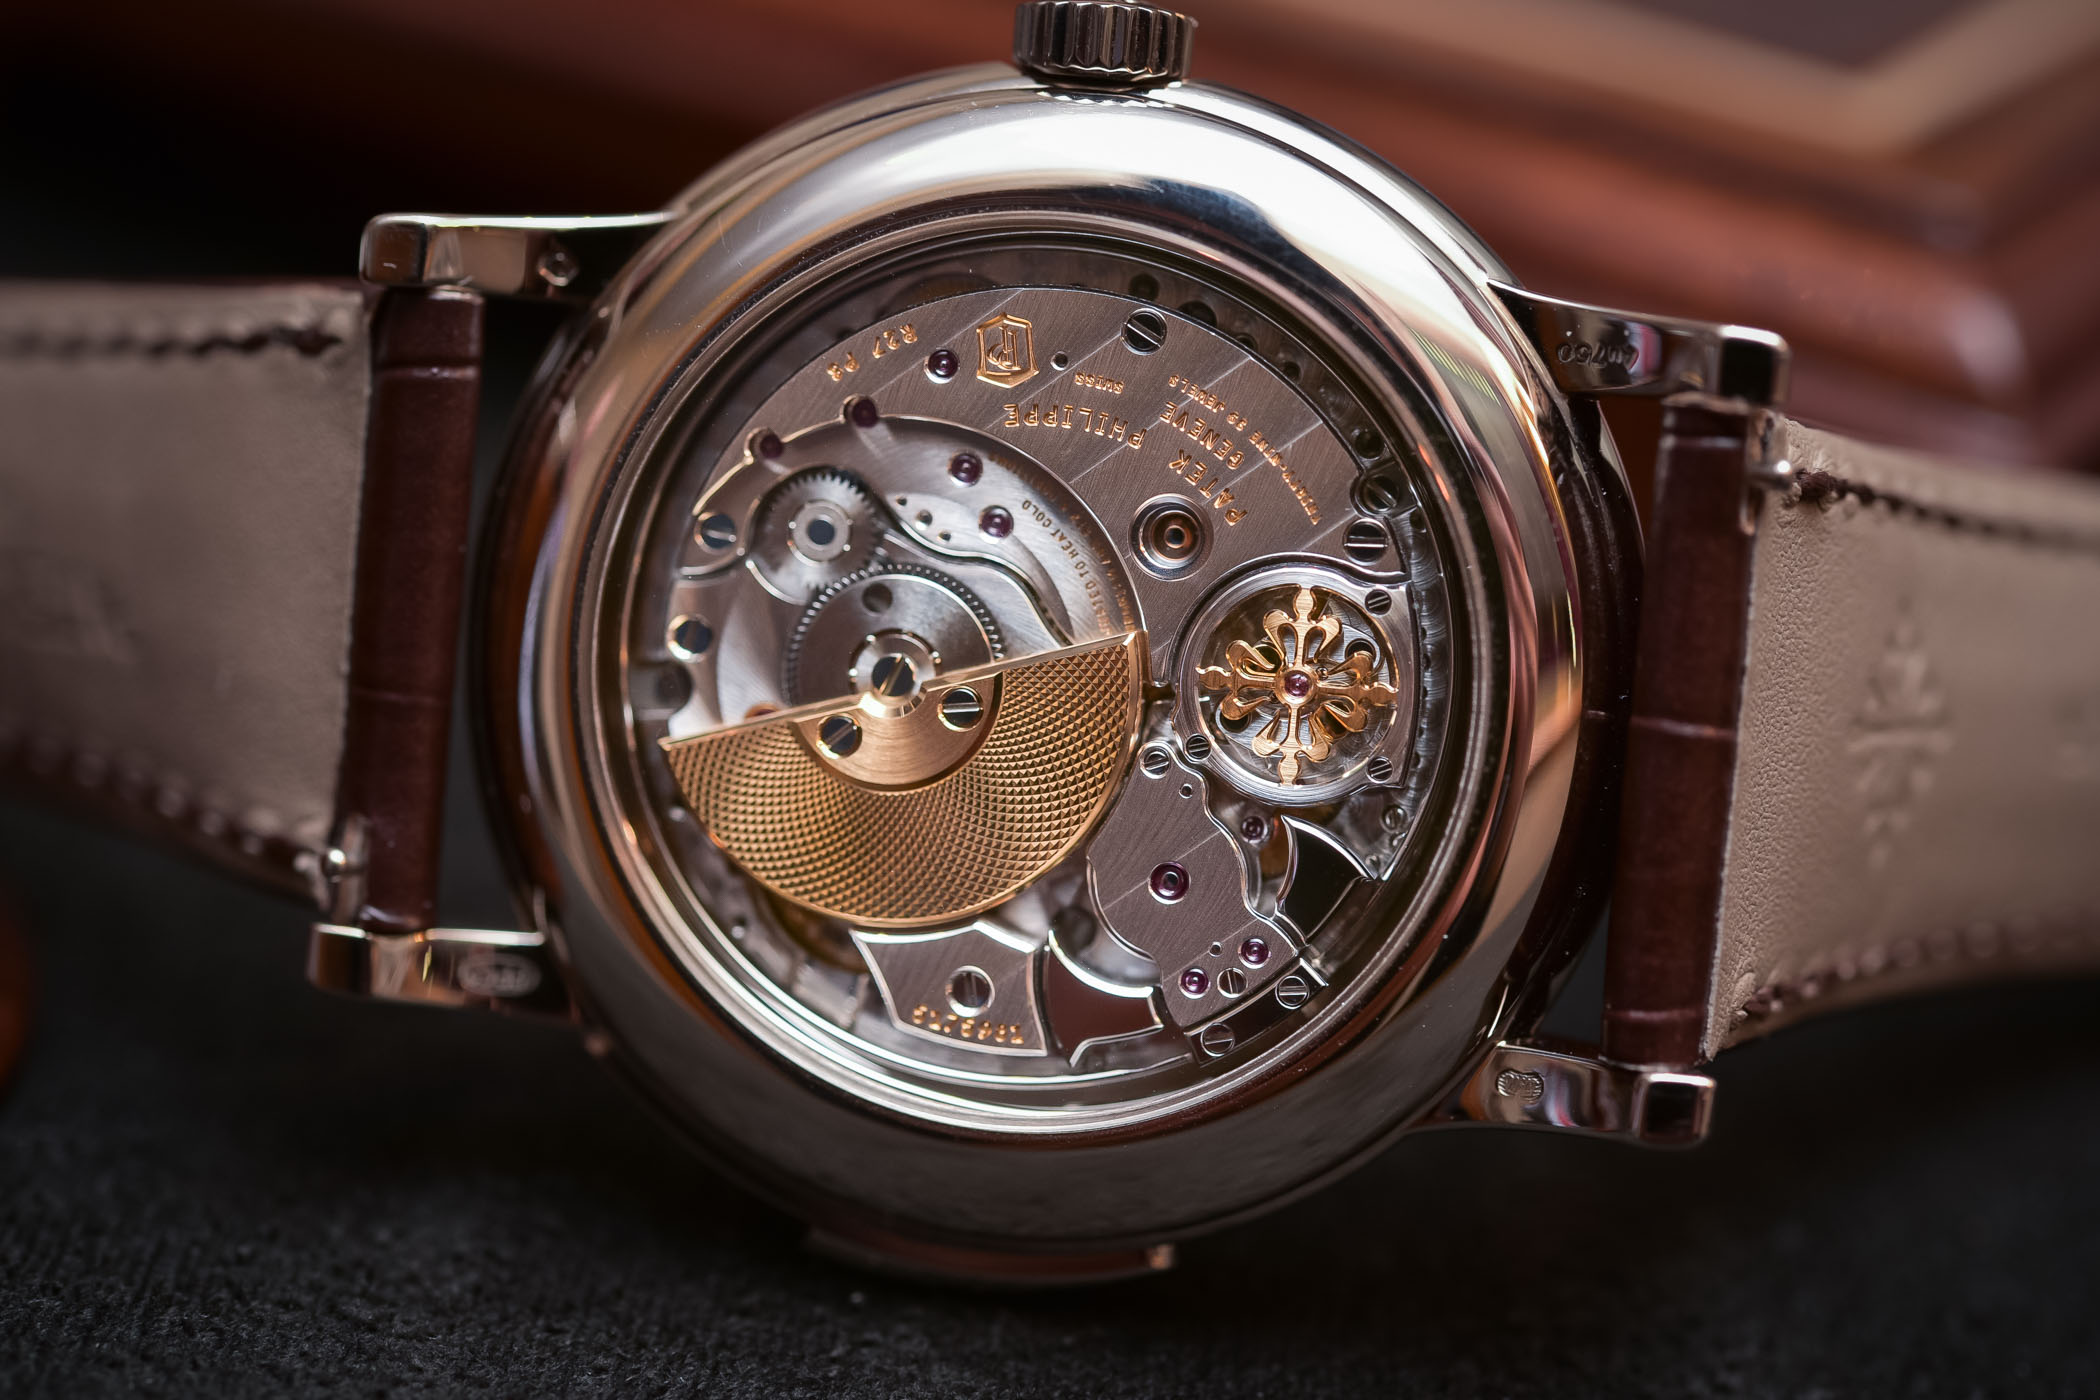 Patek Philippe 5178g Minute Repeater Cathedral Gongs